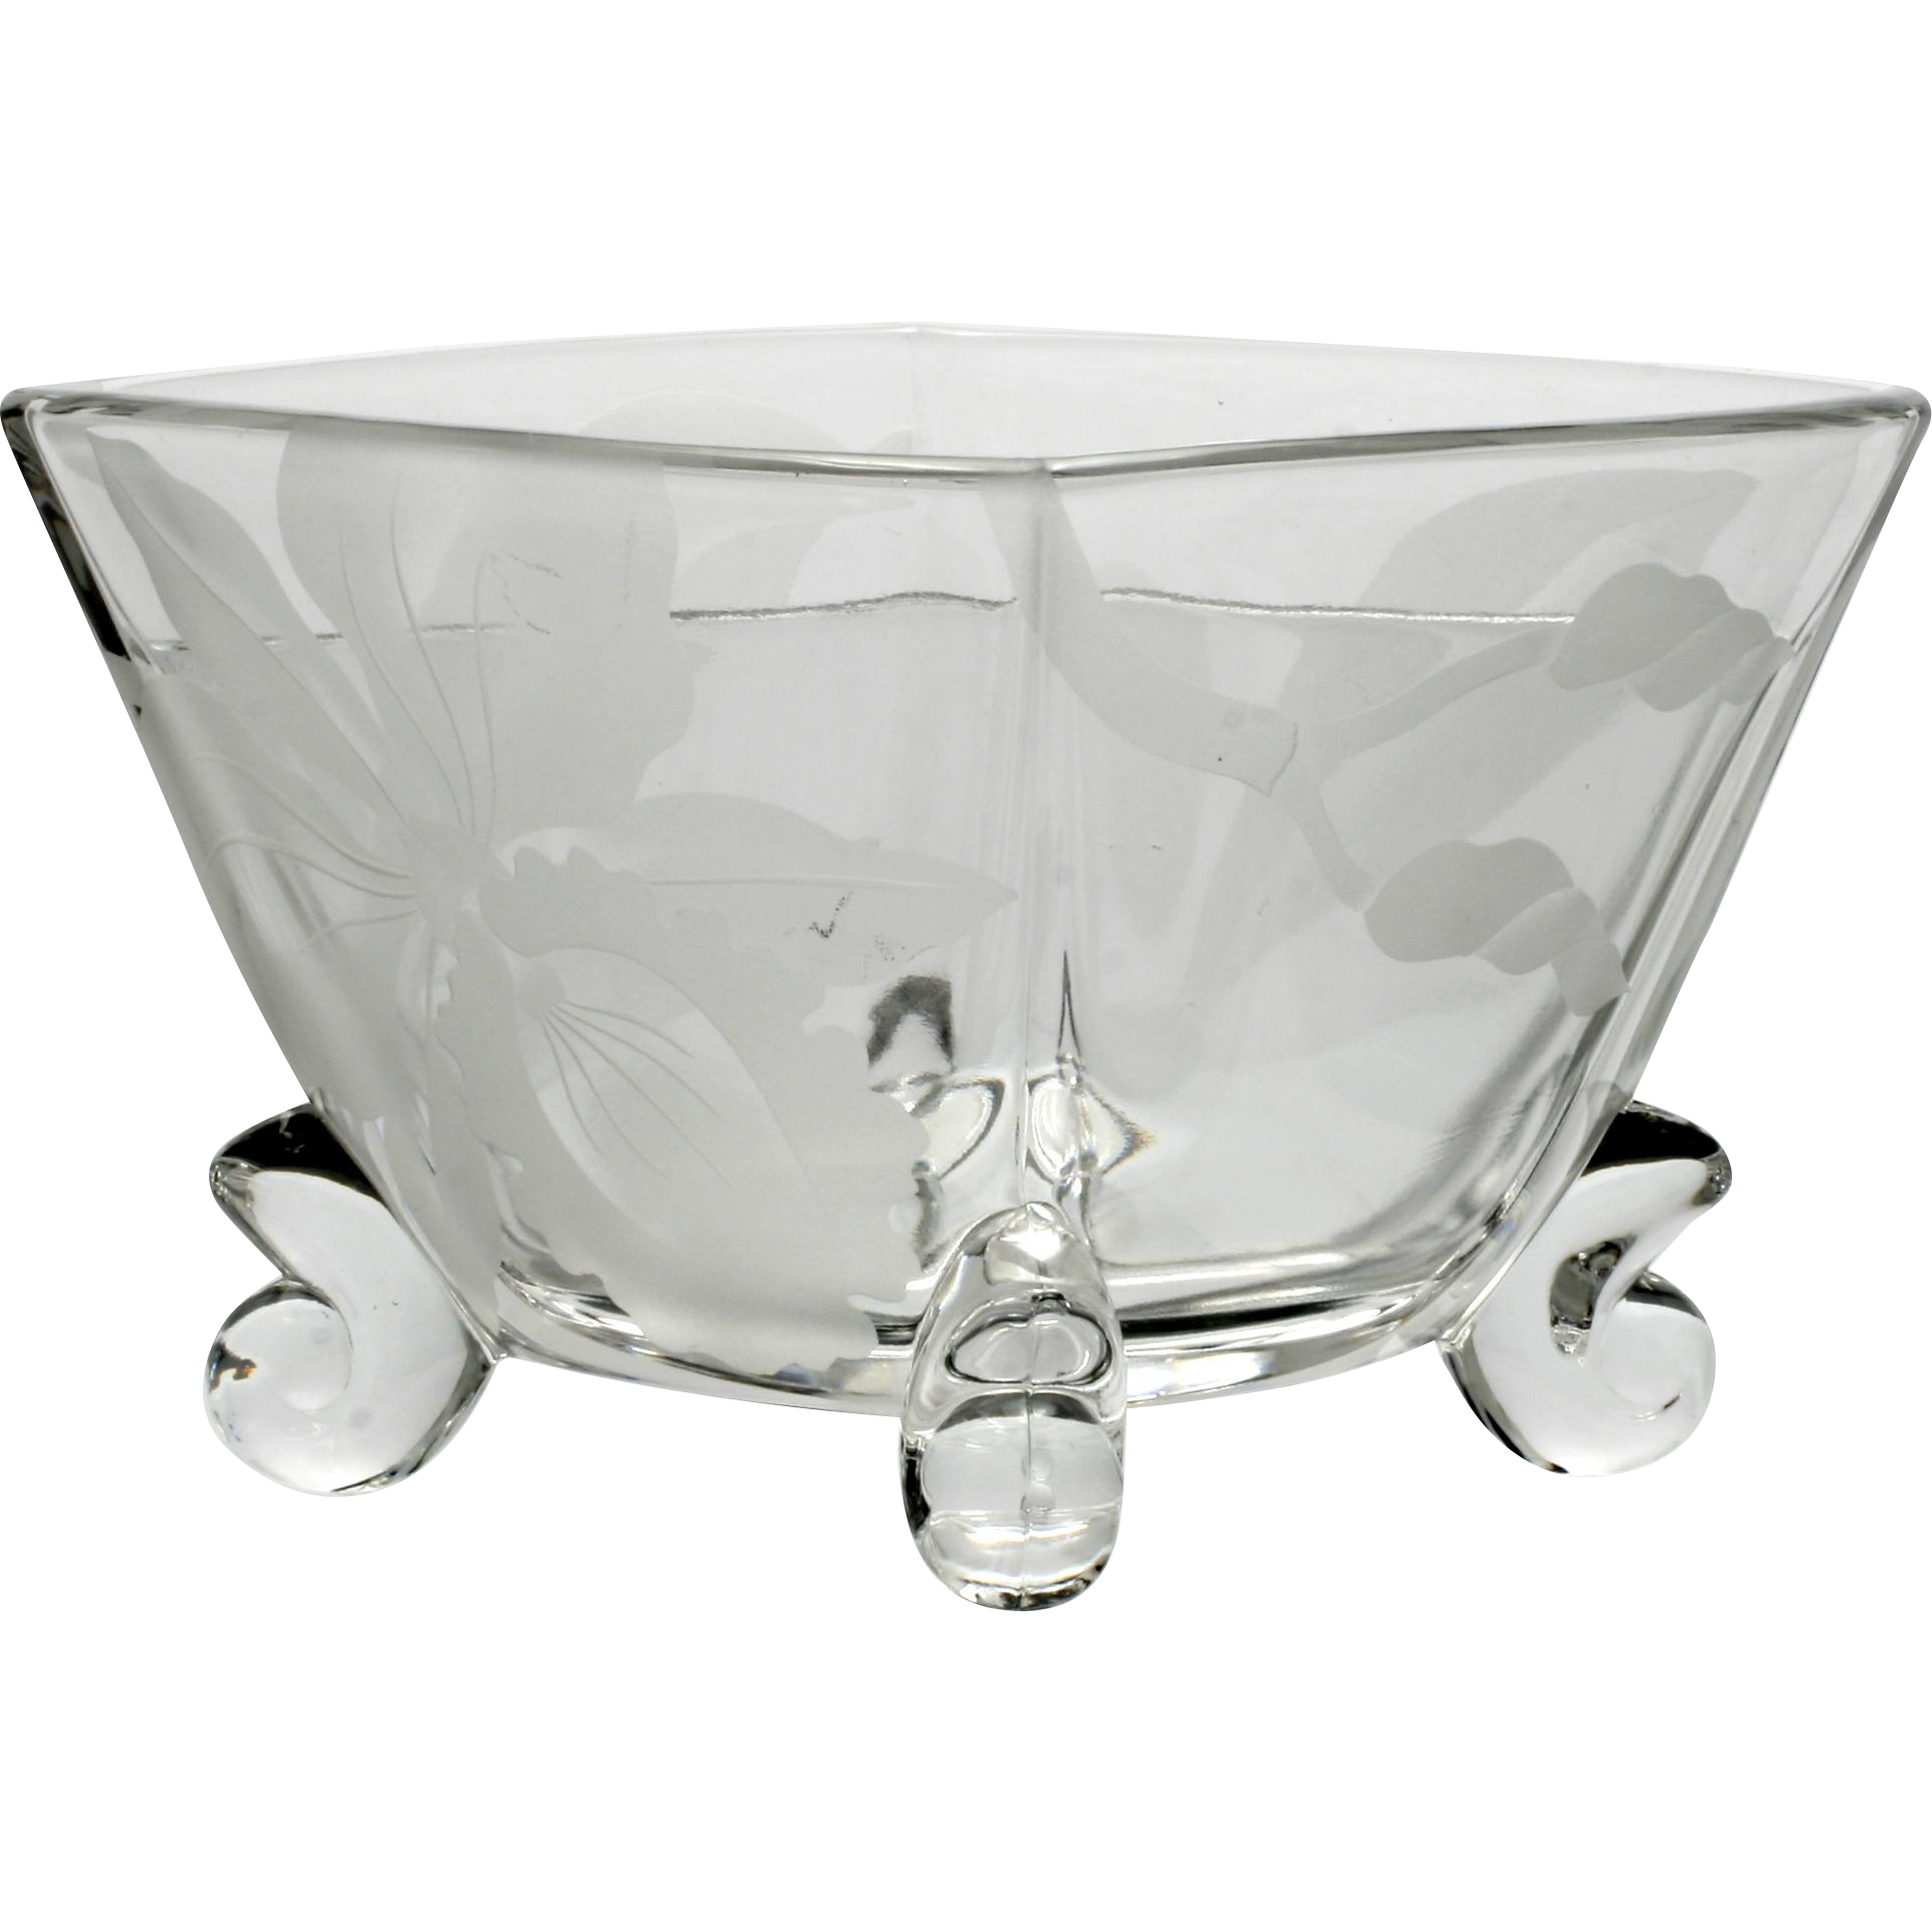 Duncan and Miller Patio Condiment Bowl Sand Blasted Orchid Flower Vintage Crystal